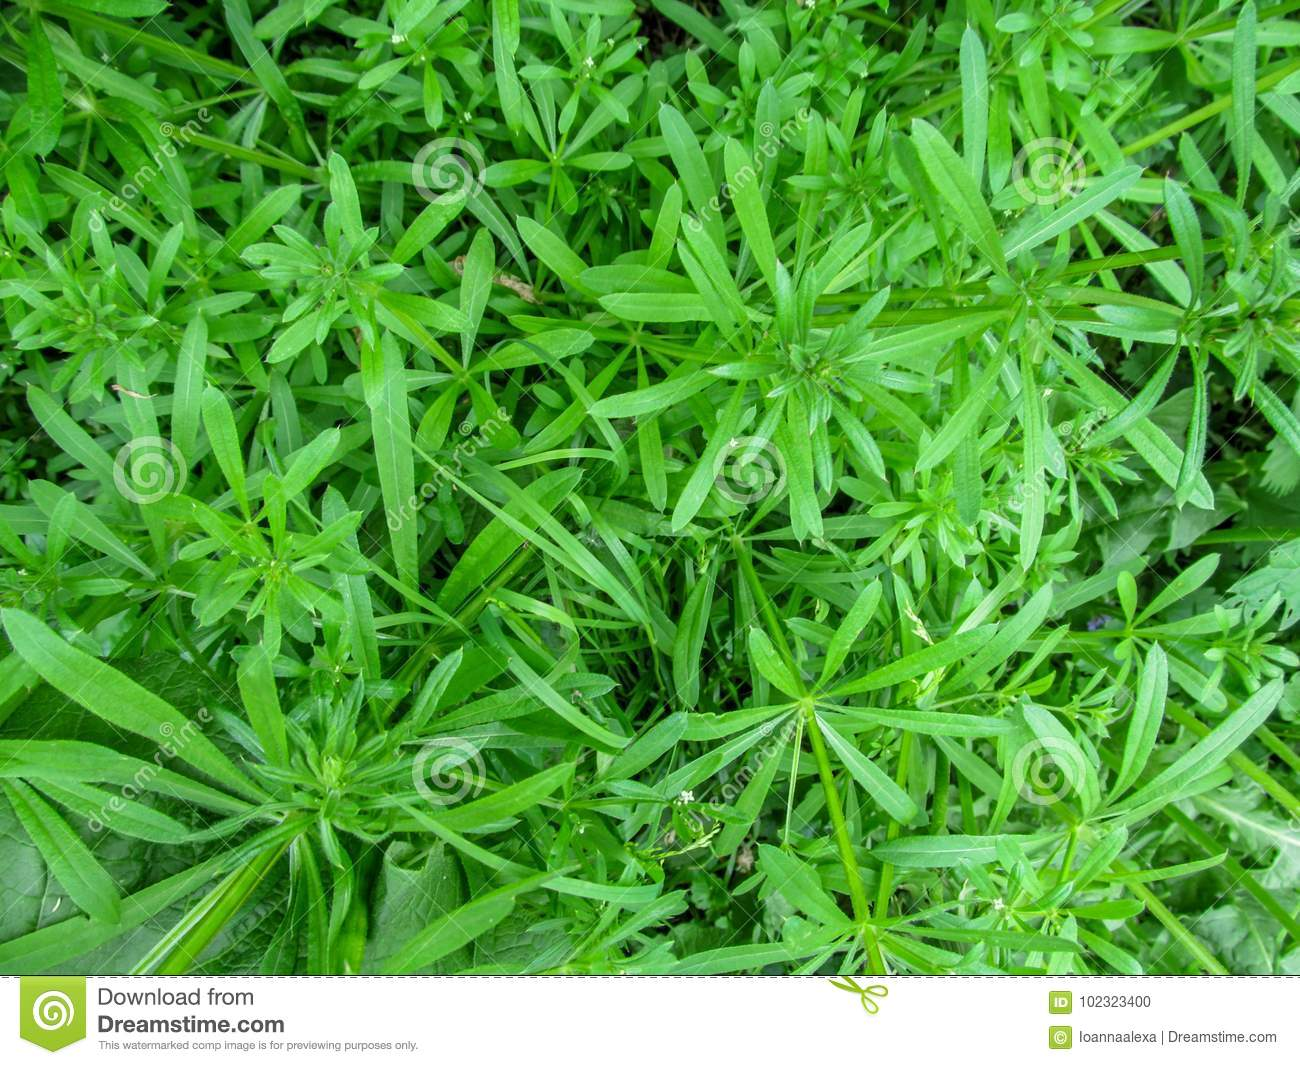 Green Floral Background Of The Galium Aparine Top View Stock Photo